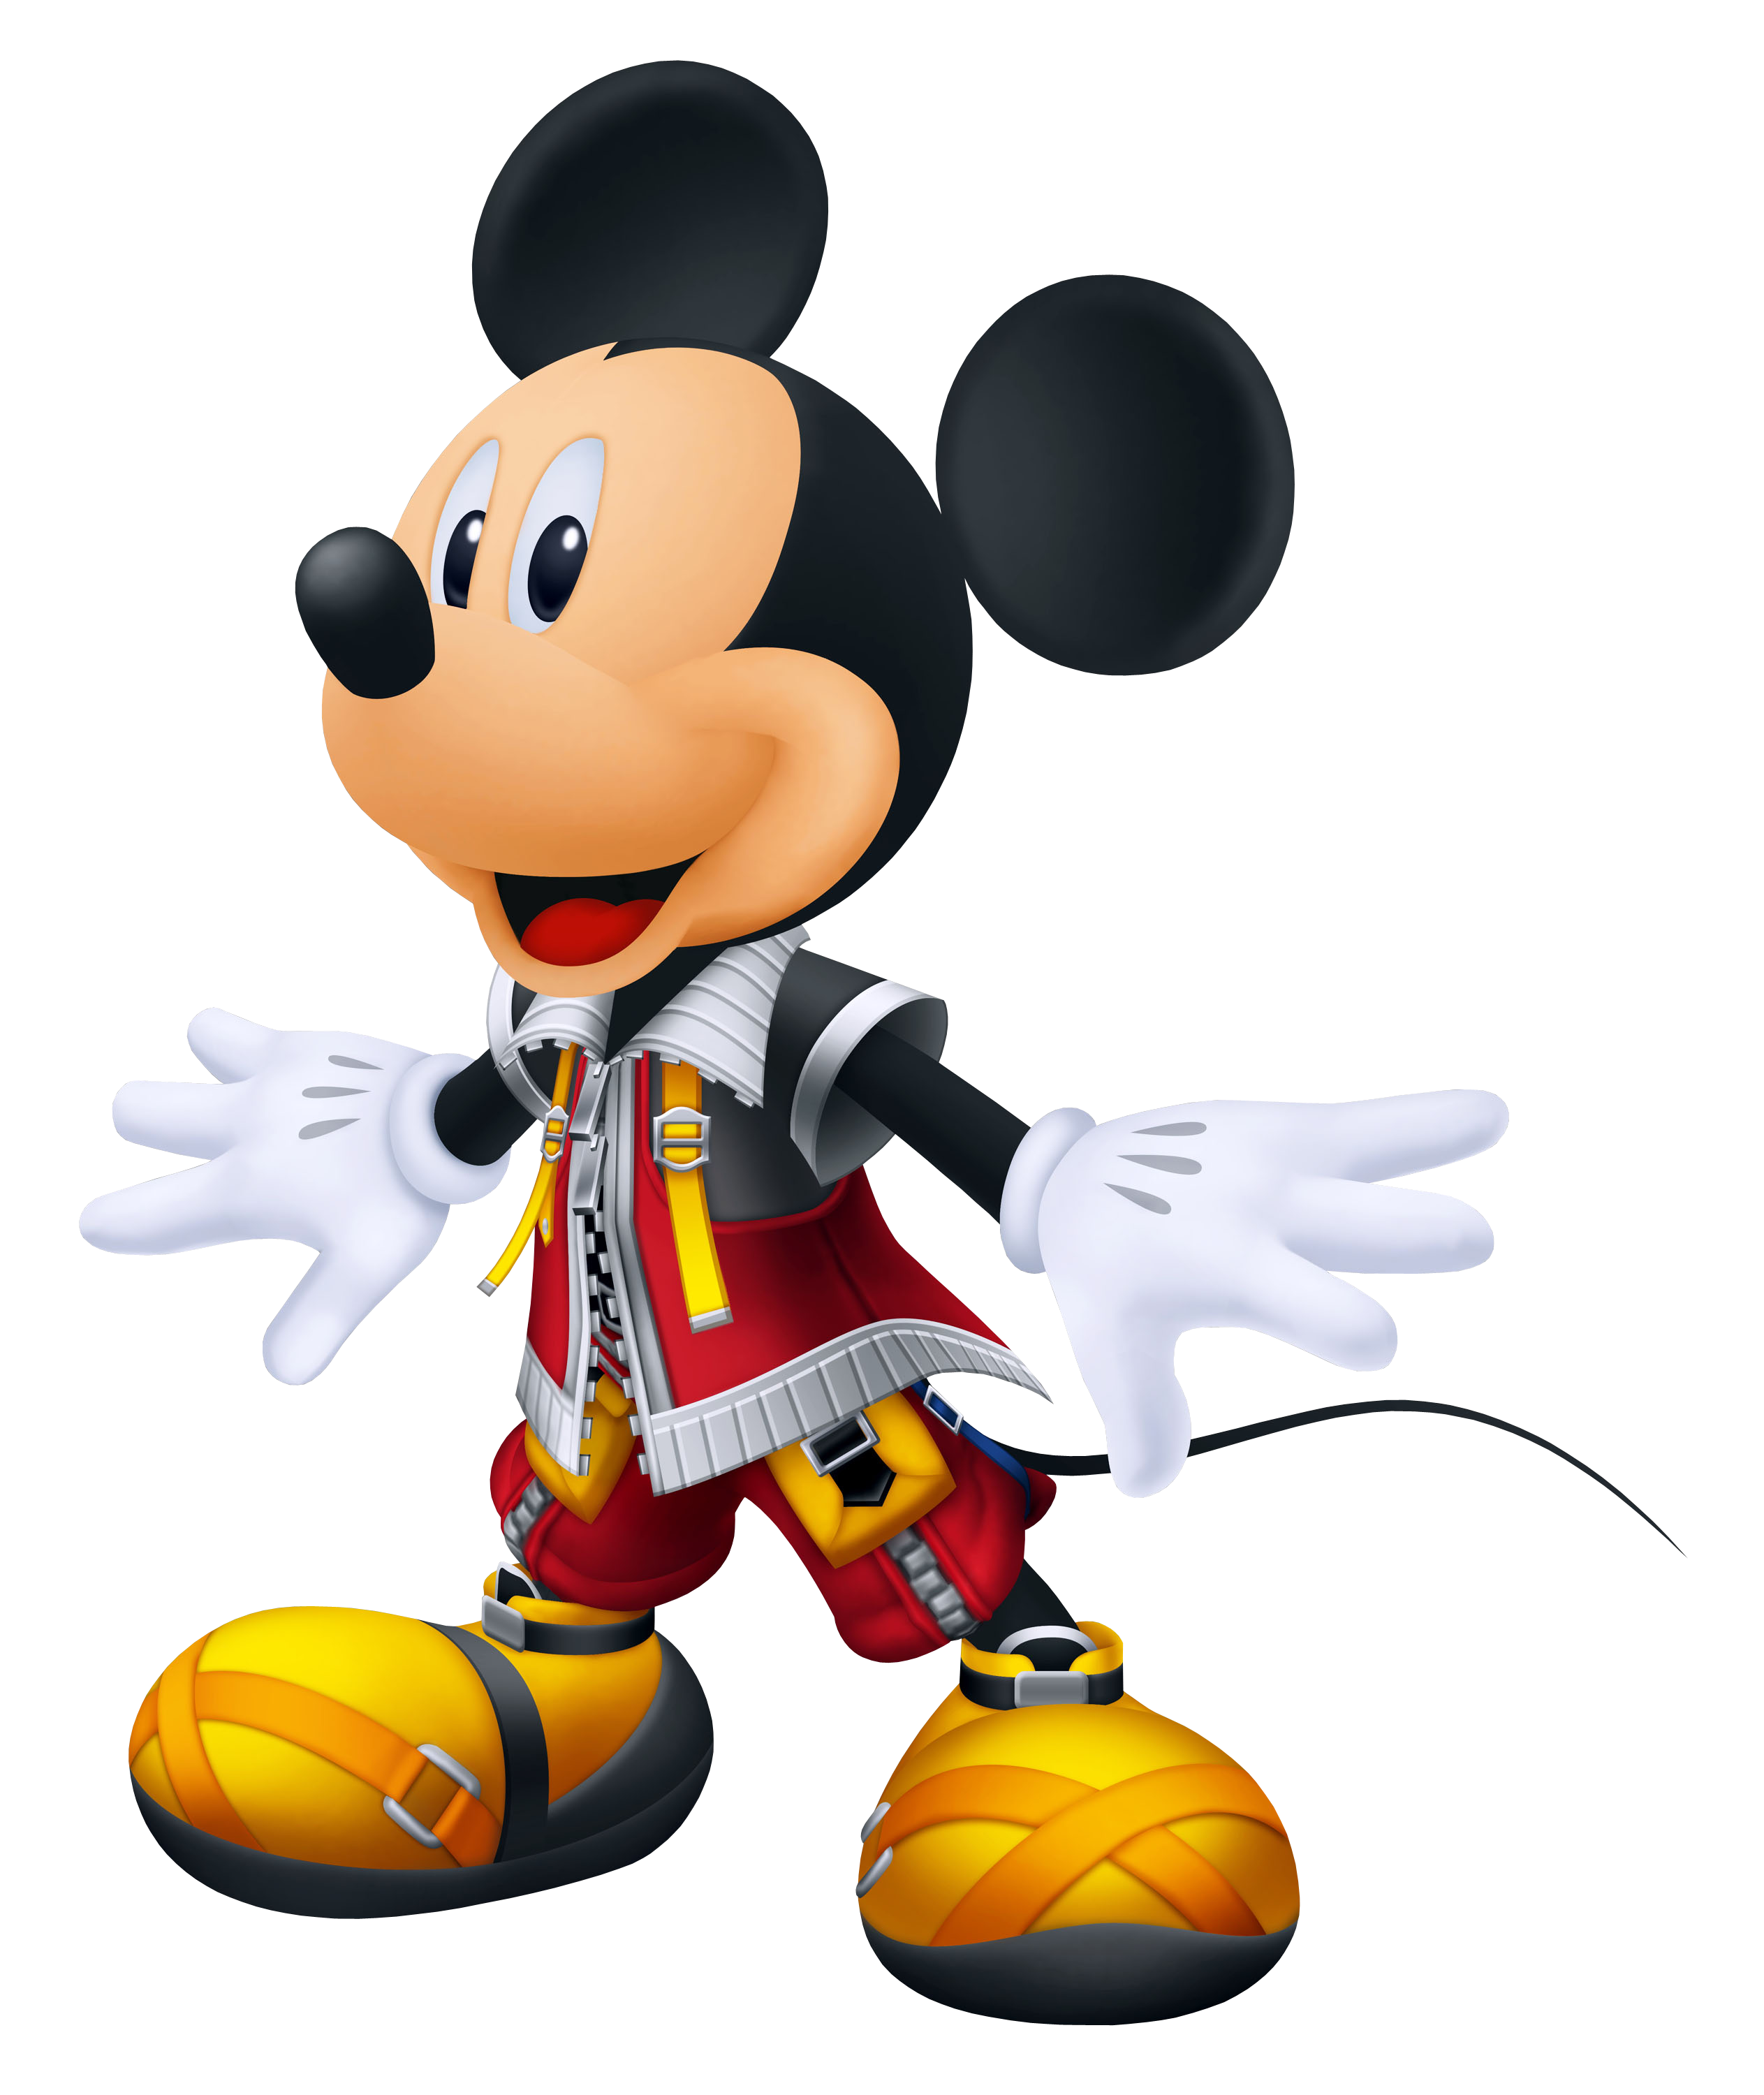 Hearts clipart character. Mickey mouse png images